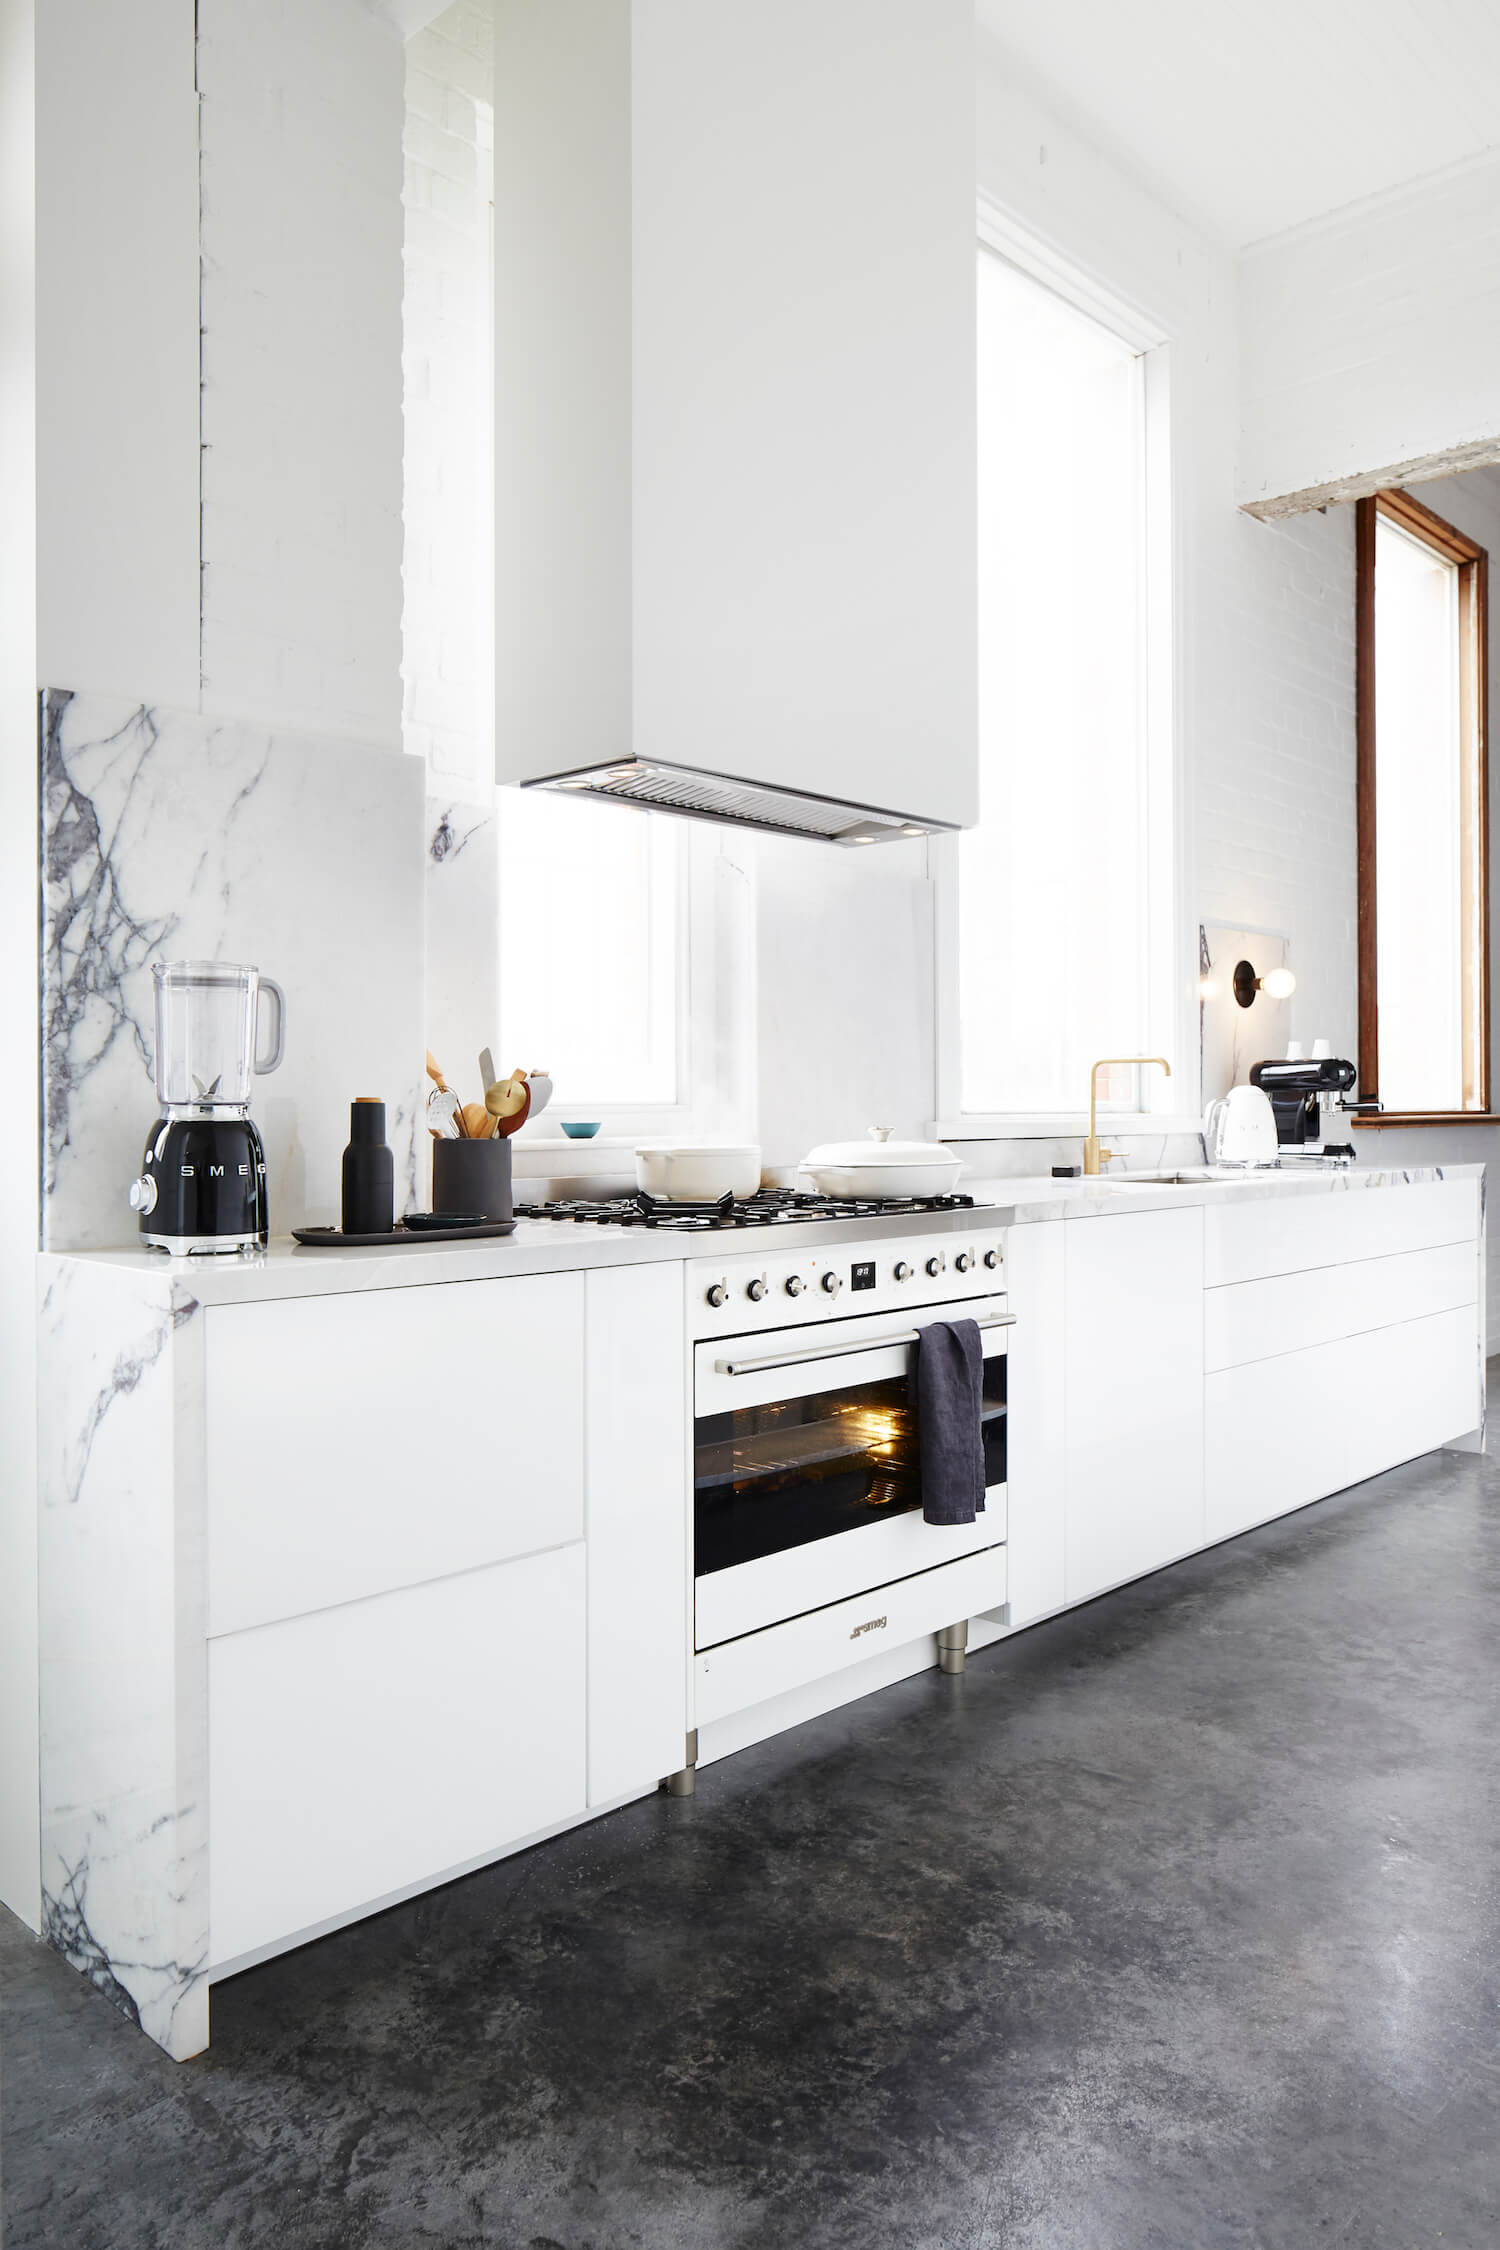 est smeg love your layout compact kitchen3 ArmelleHabibTheBankStudio13